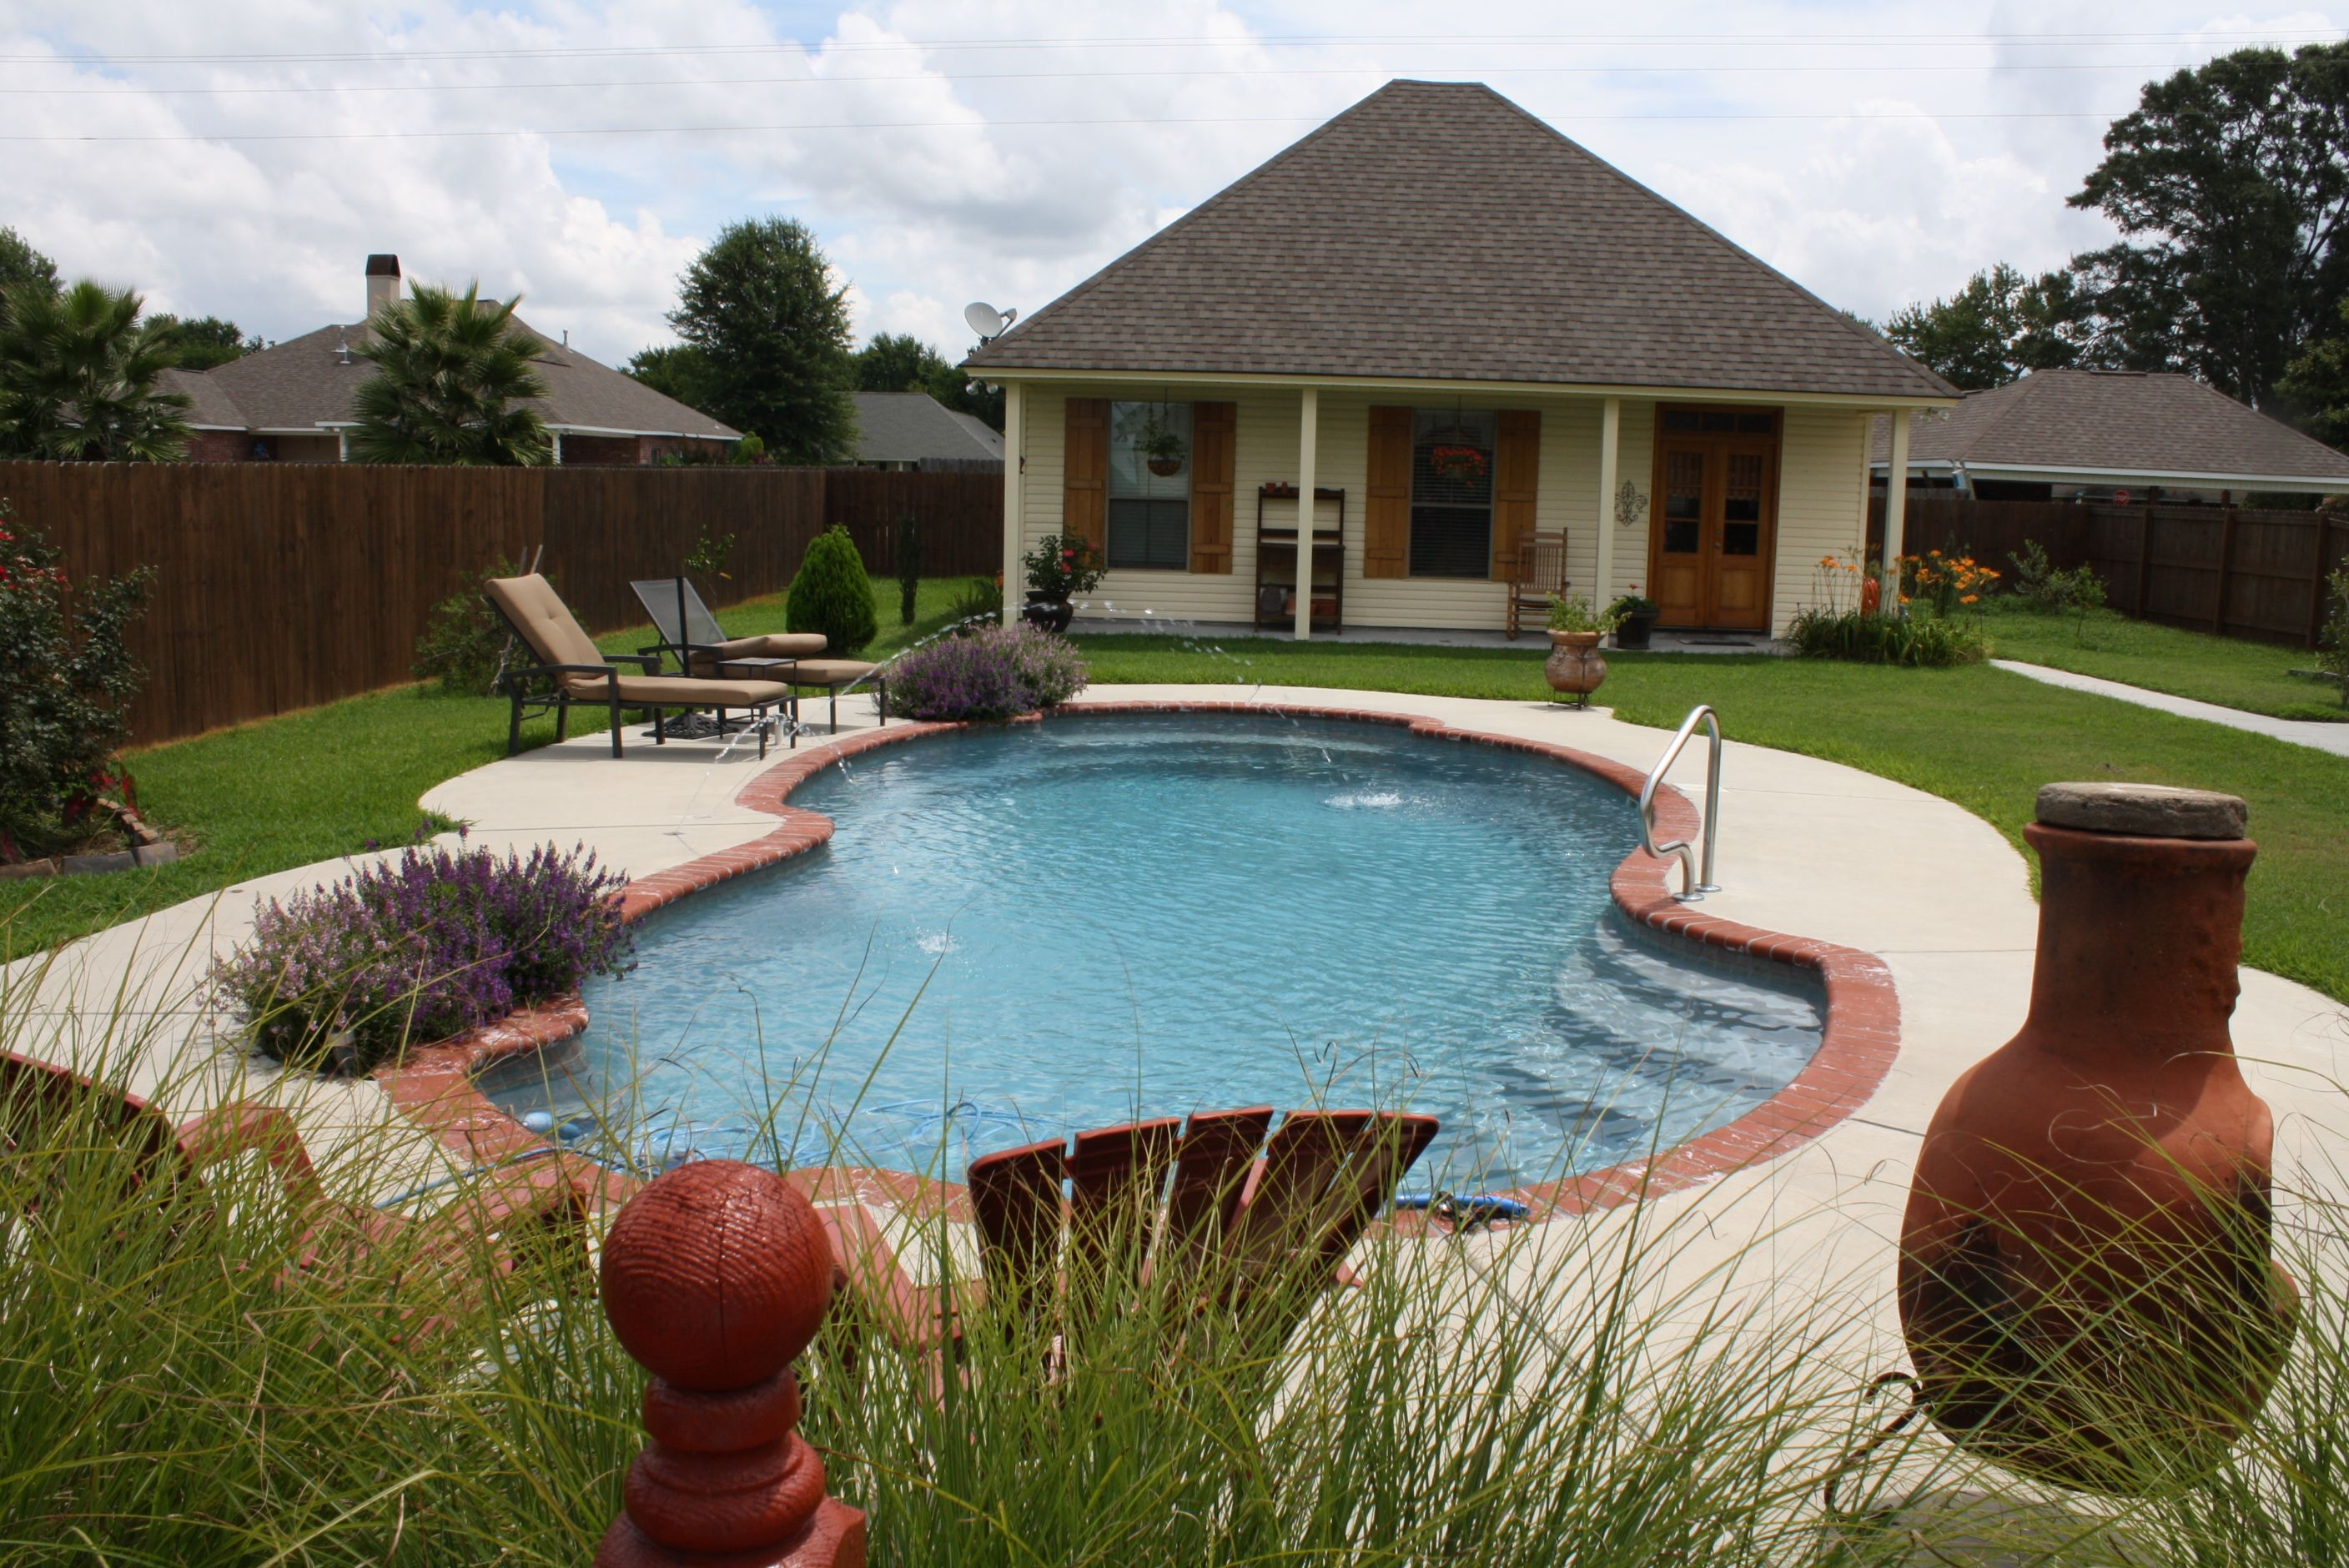 Central Pools Inc Baton Rouge Louisiana Trilogy